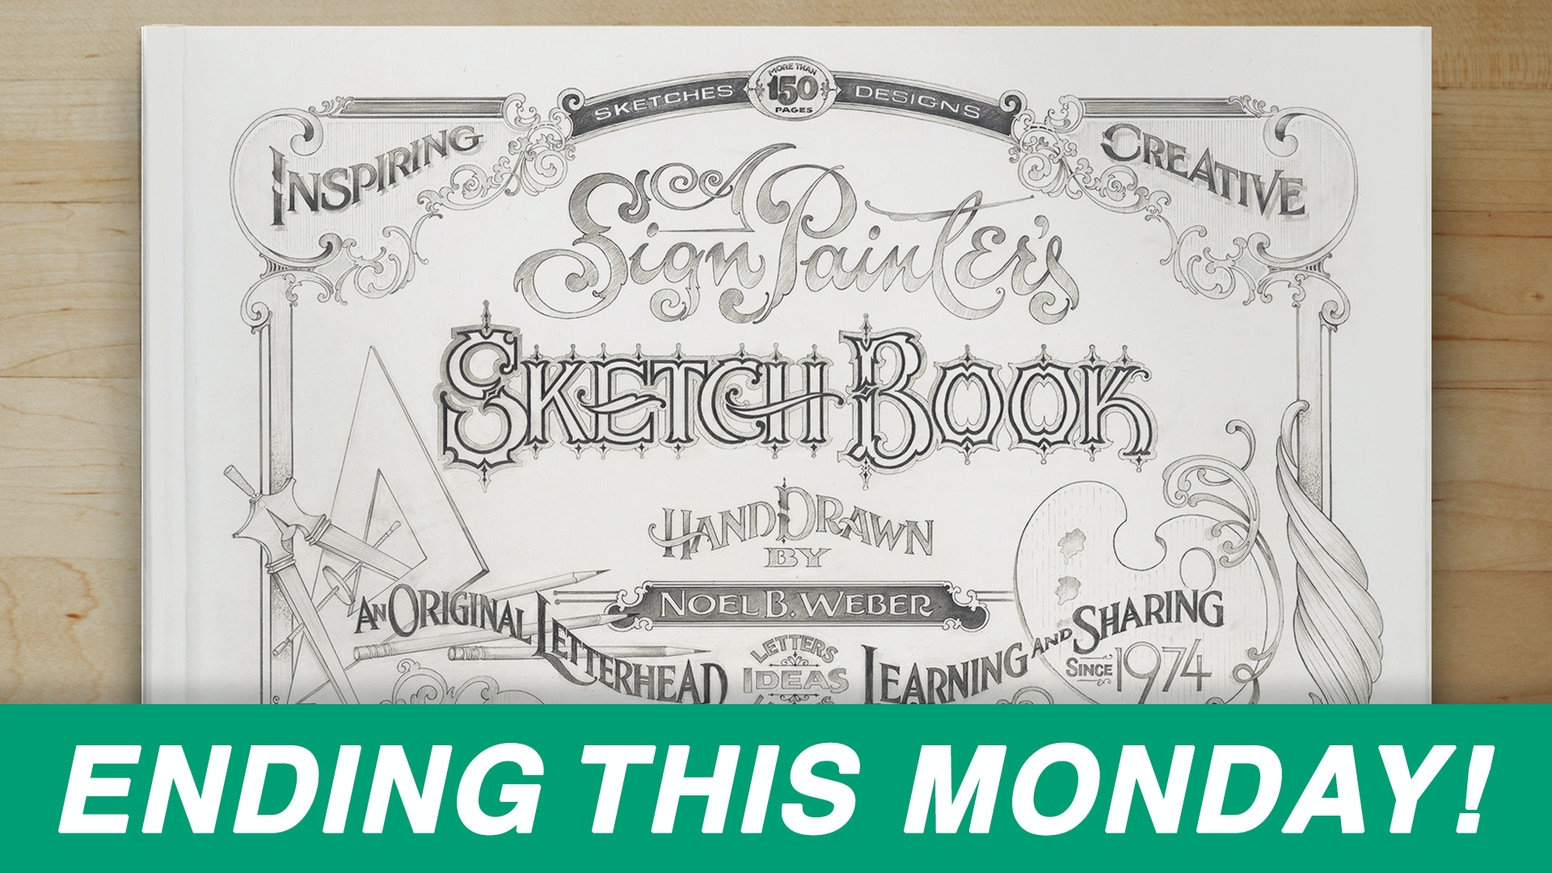 Hardcover art book of inspiring sketches by an old-school sign painter. Click the link below to pre-order the book. (Shipping April 2019)